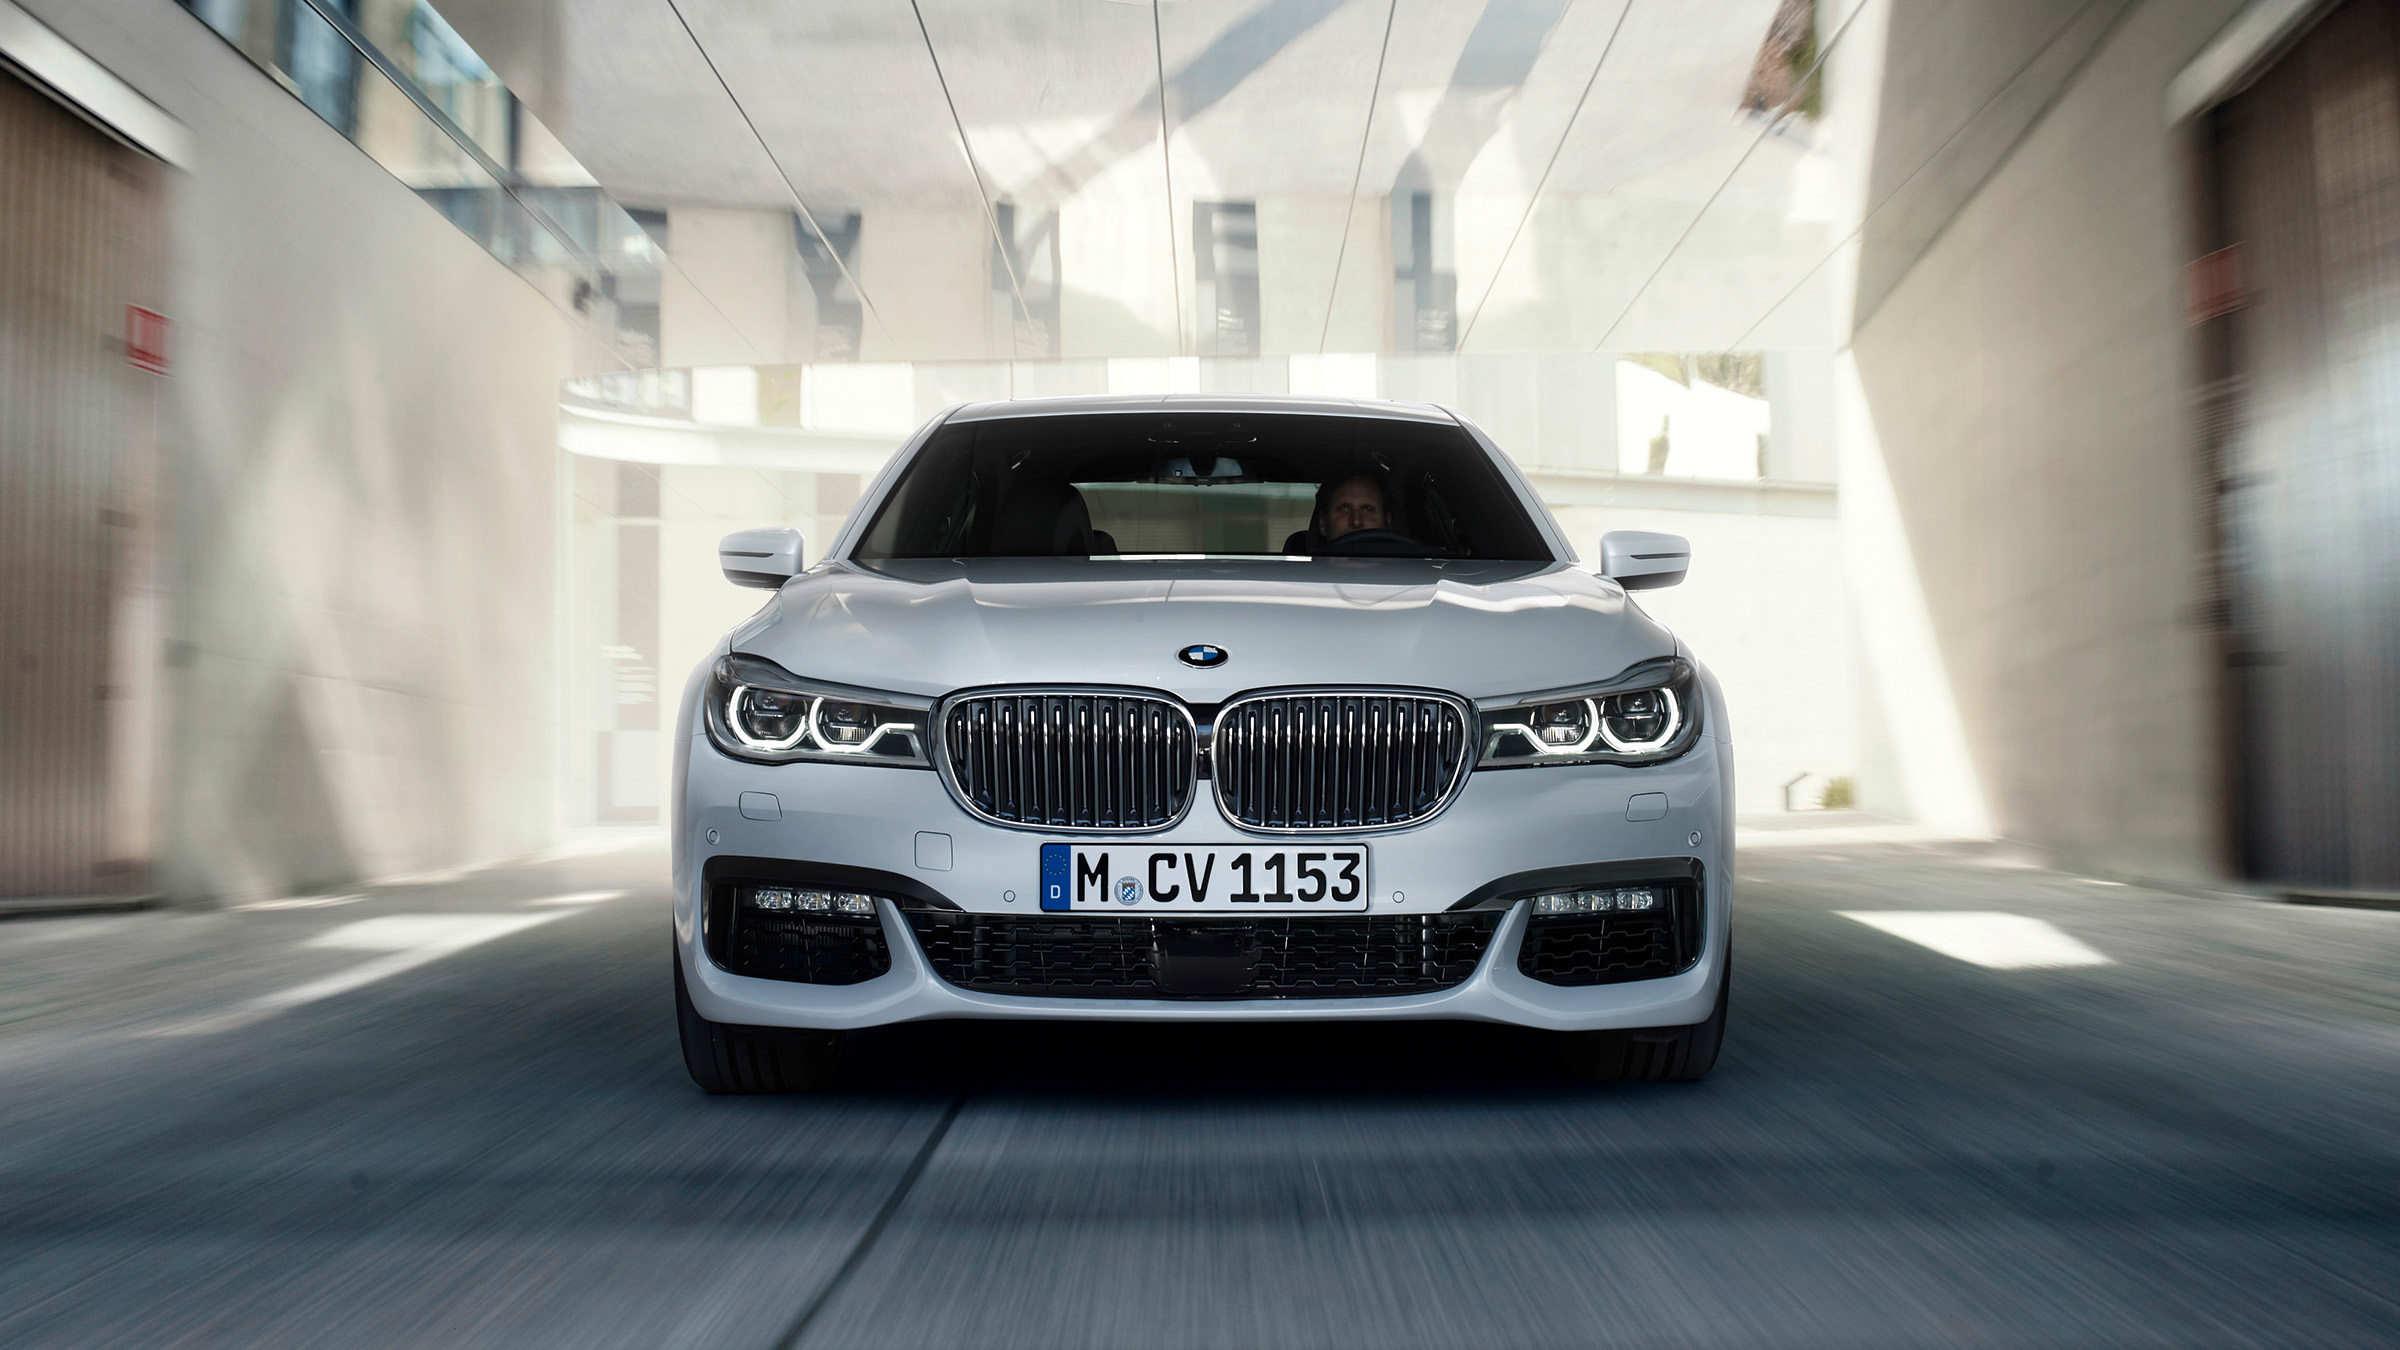 BMW_7ER_EMIR_HAVERIC_11_2400